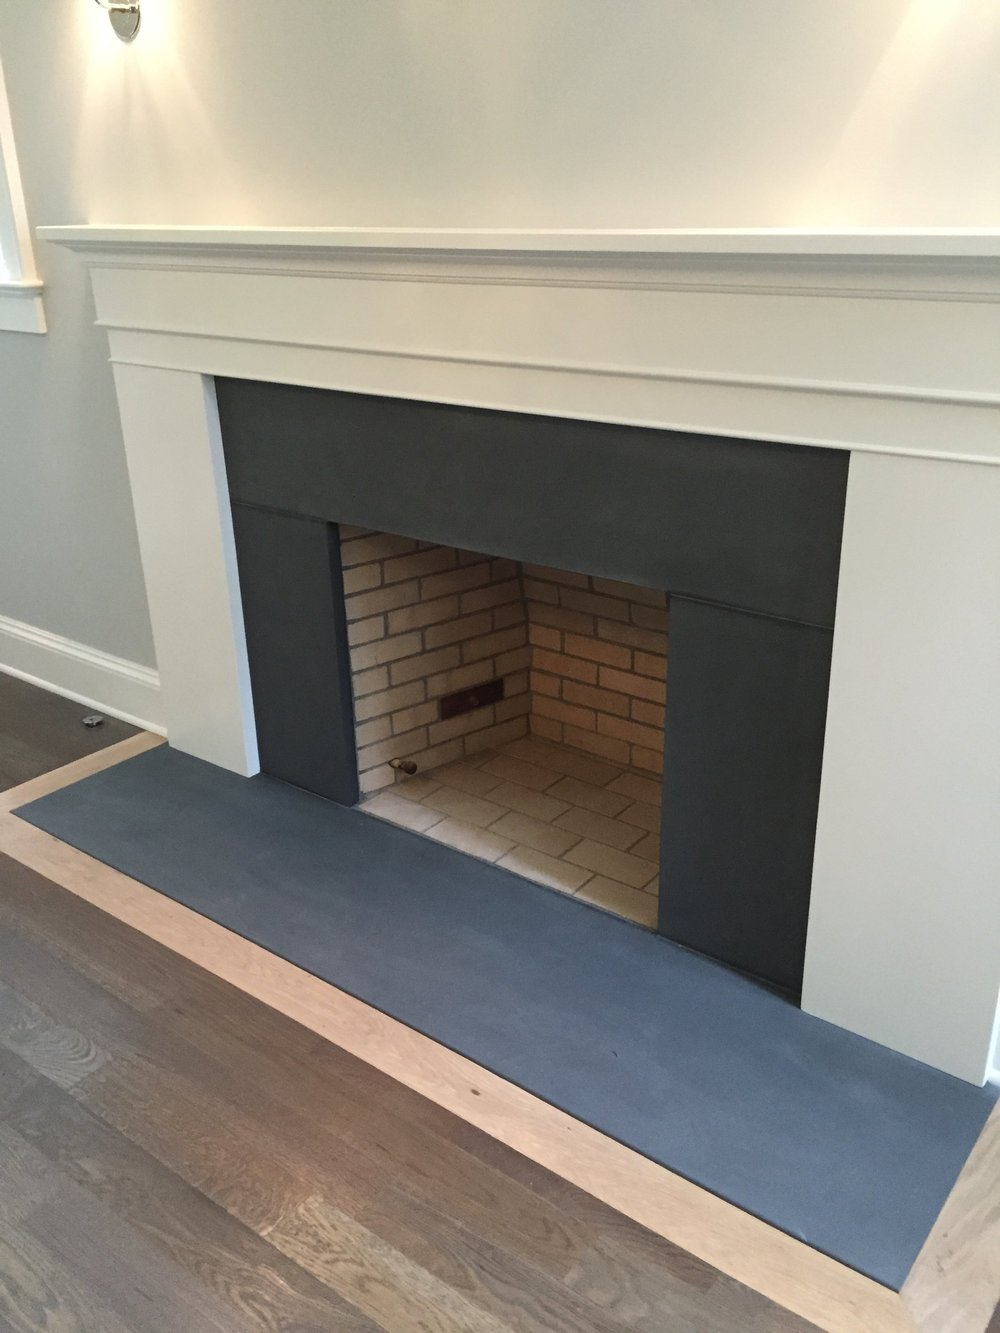 DARK BLUESTONE FIREPLACE SURROUND AND HEARTH, HONED